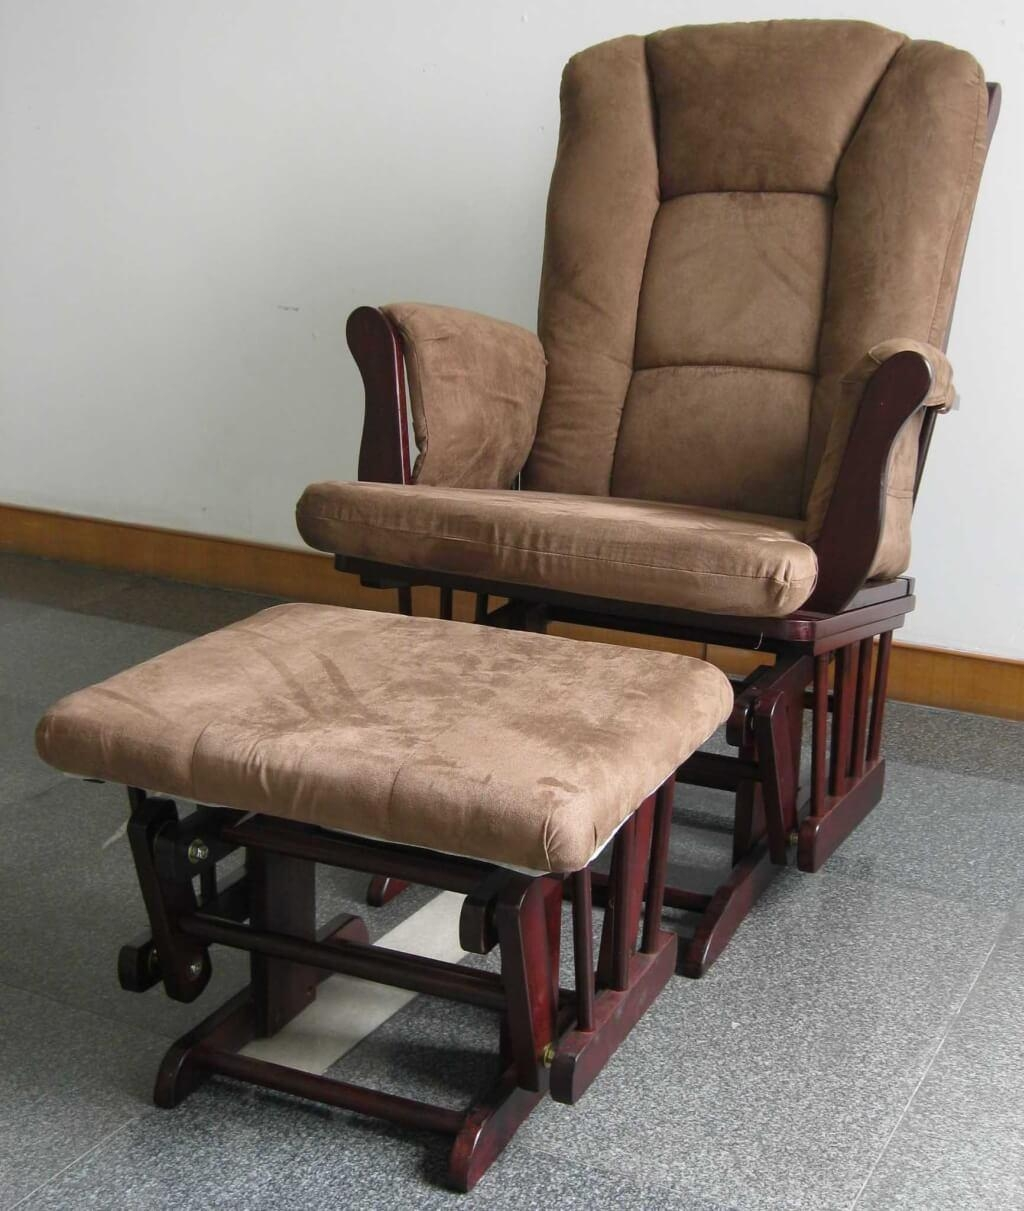 Sofa Brown Rocking Chair For Nursery | Tamingthesat With Rocking Sofa Chairs (Image 14 of 20)